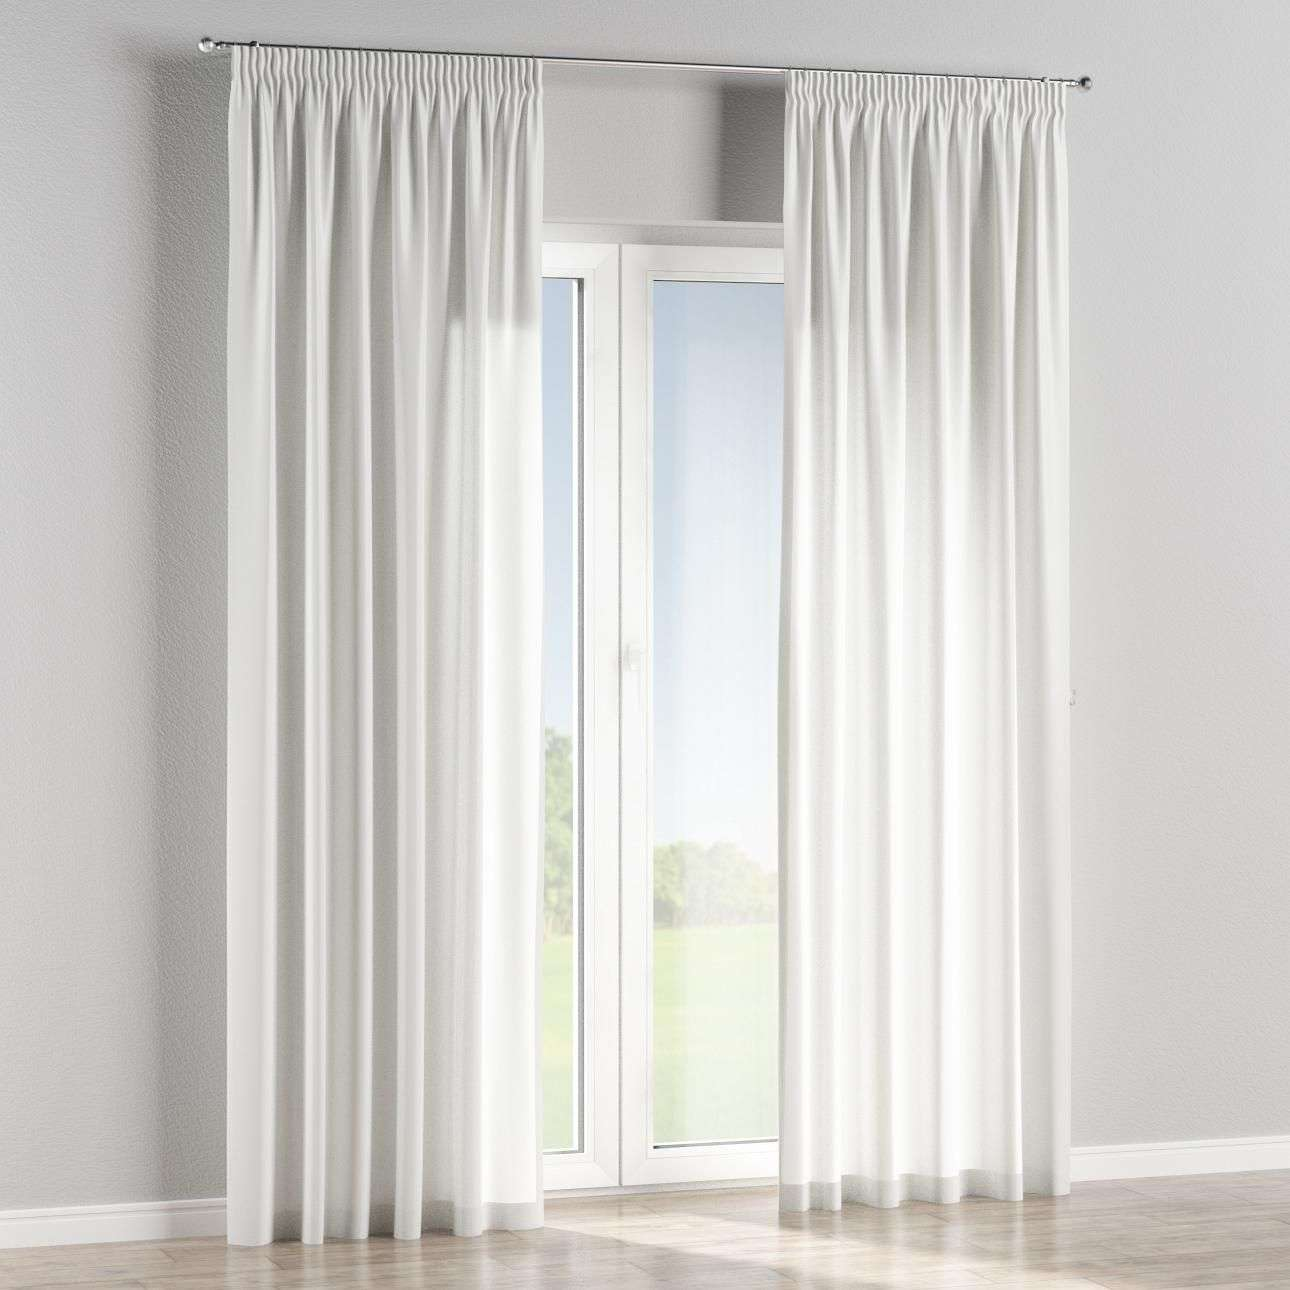 Pencil pleat curtains in collection Freestyle, fabric: 150-20